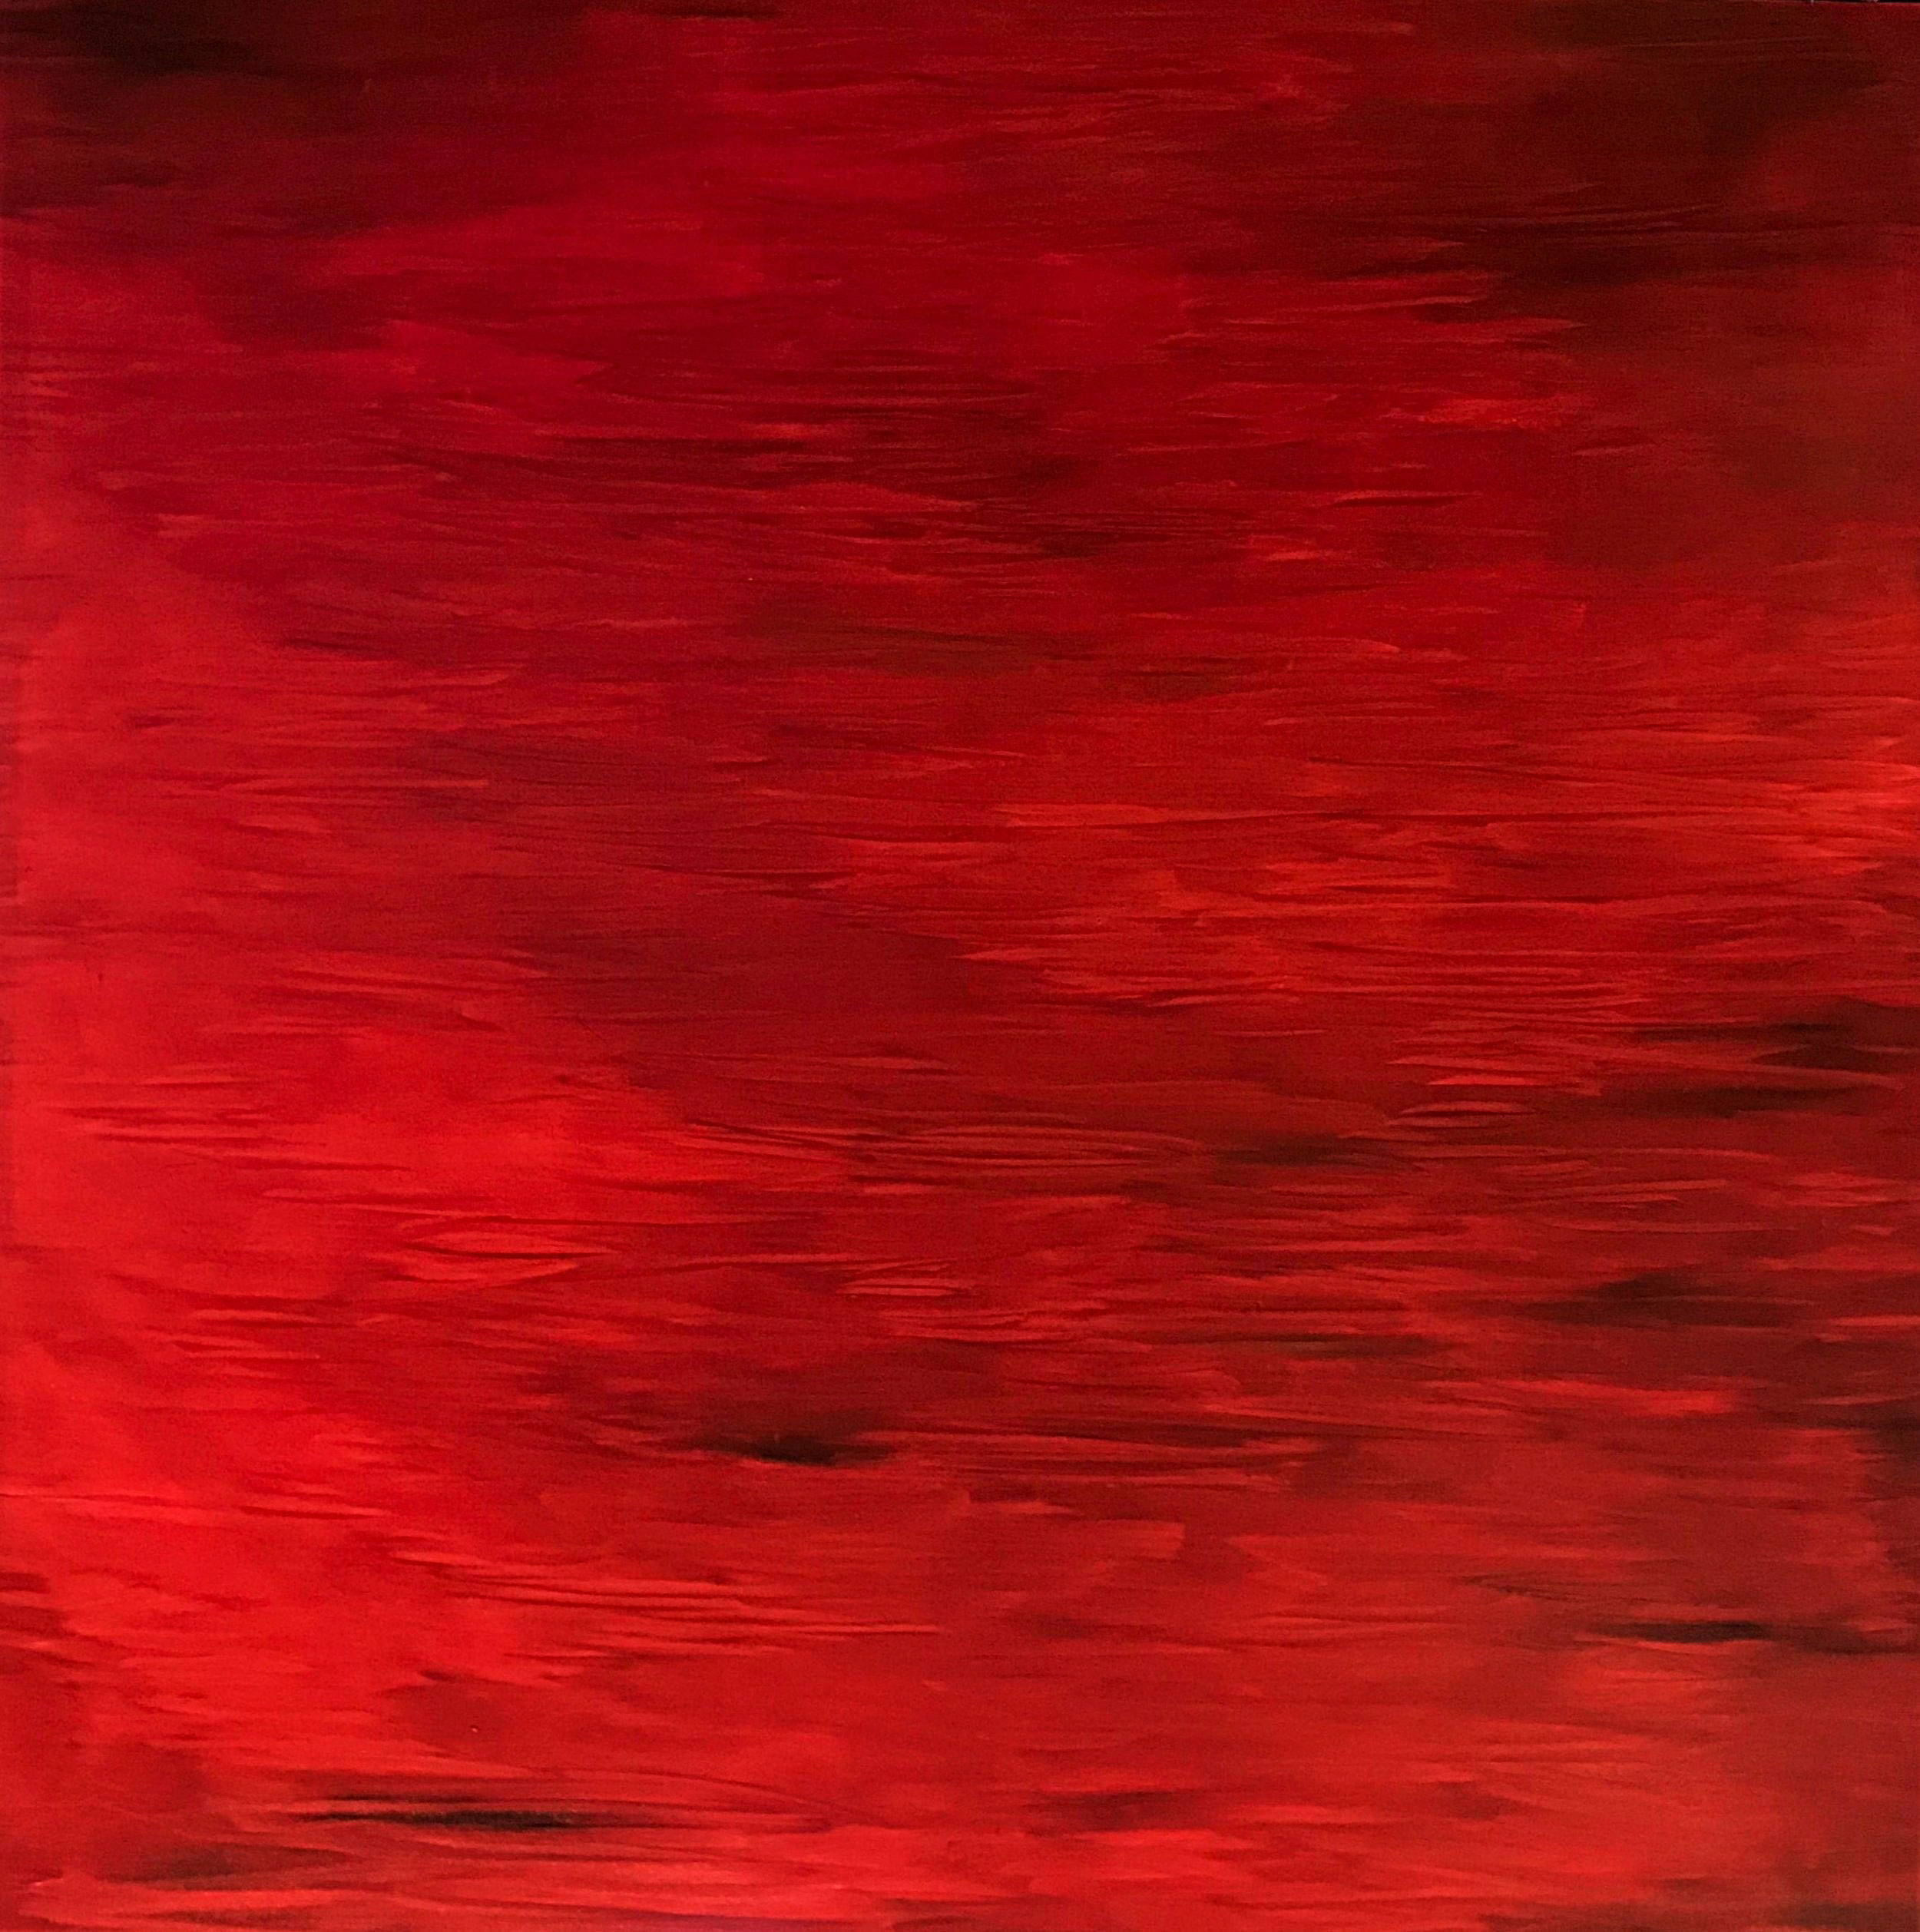 """Red I   2009  48"""" x 48"""" (121.9 x 121.9 cm)  oil on canvas   CHADWICK COLLECTION  🔴"""